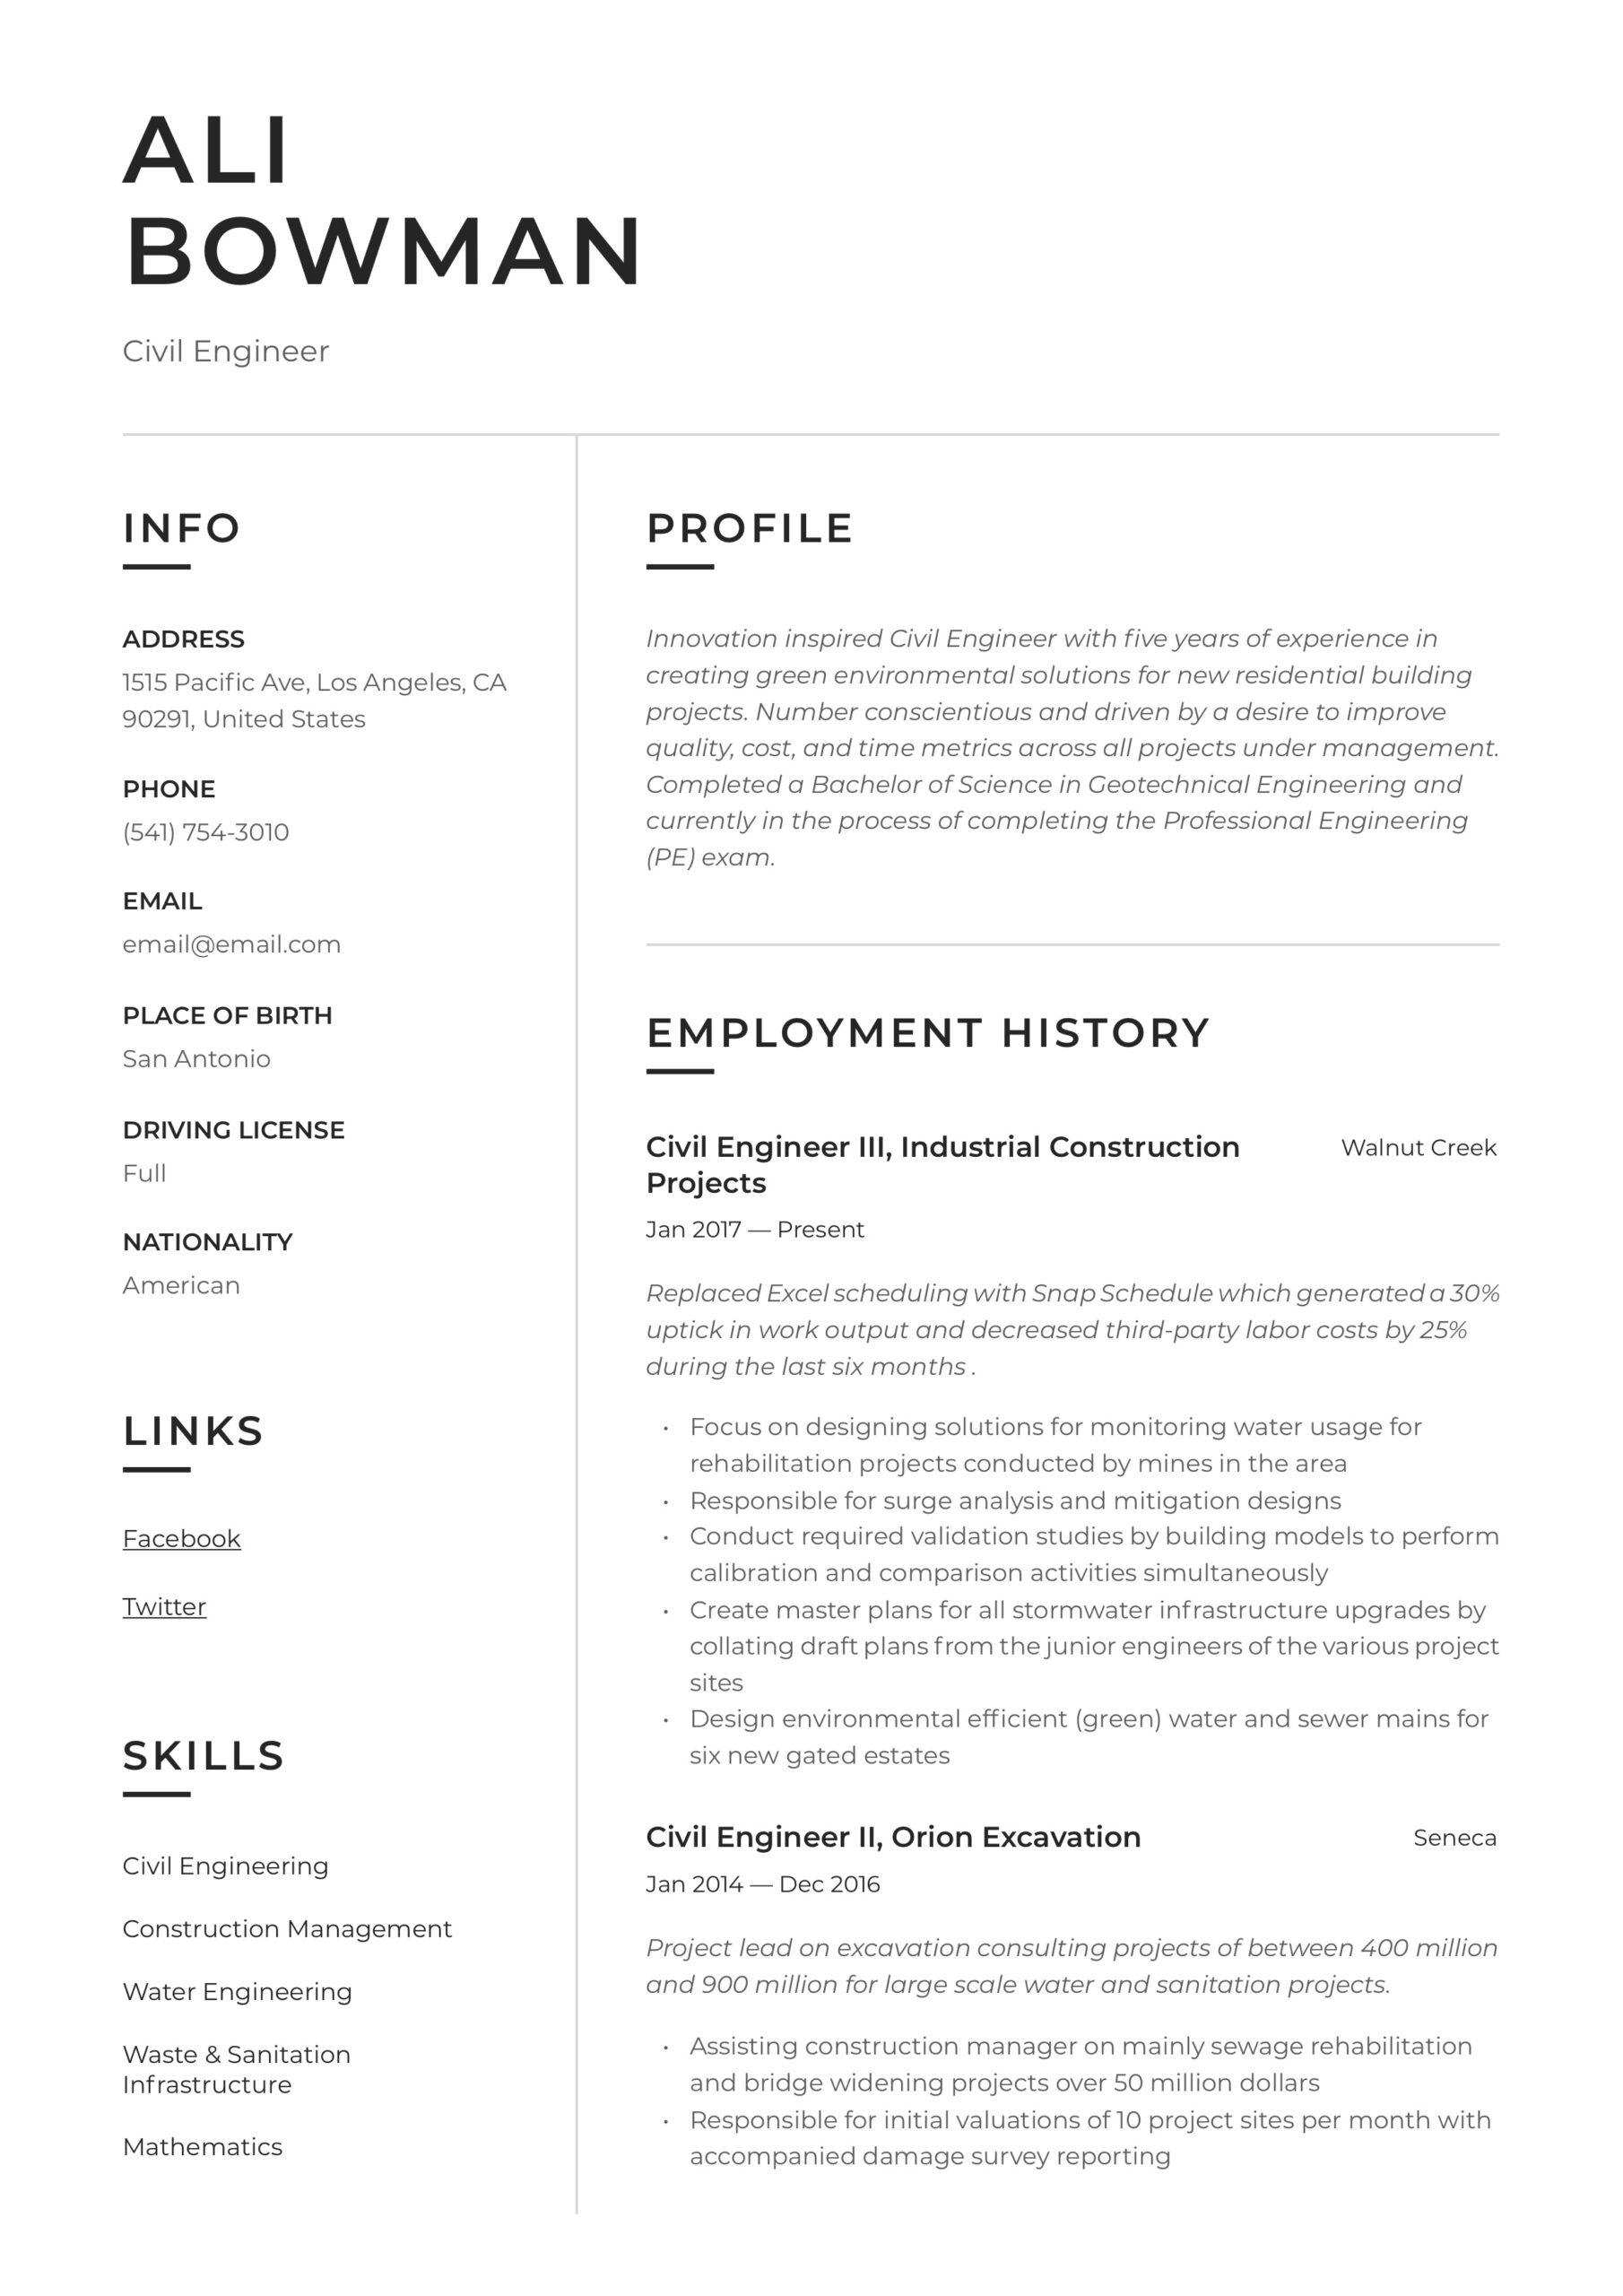 civil engineer resume writing guide templates eit police application server and bartender Resume Civil Engineer Eit Resume